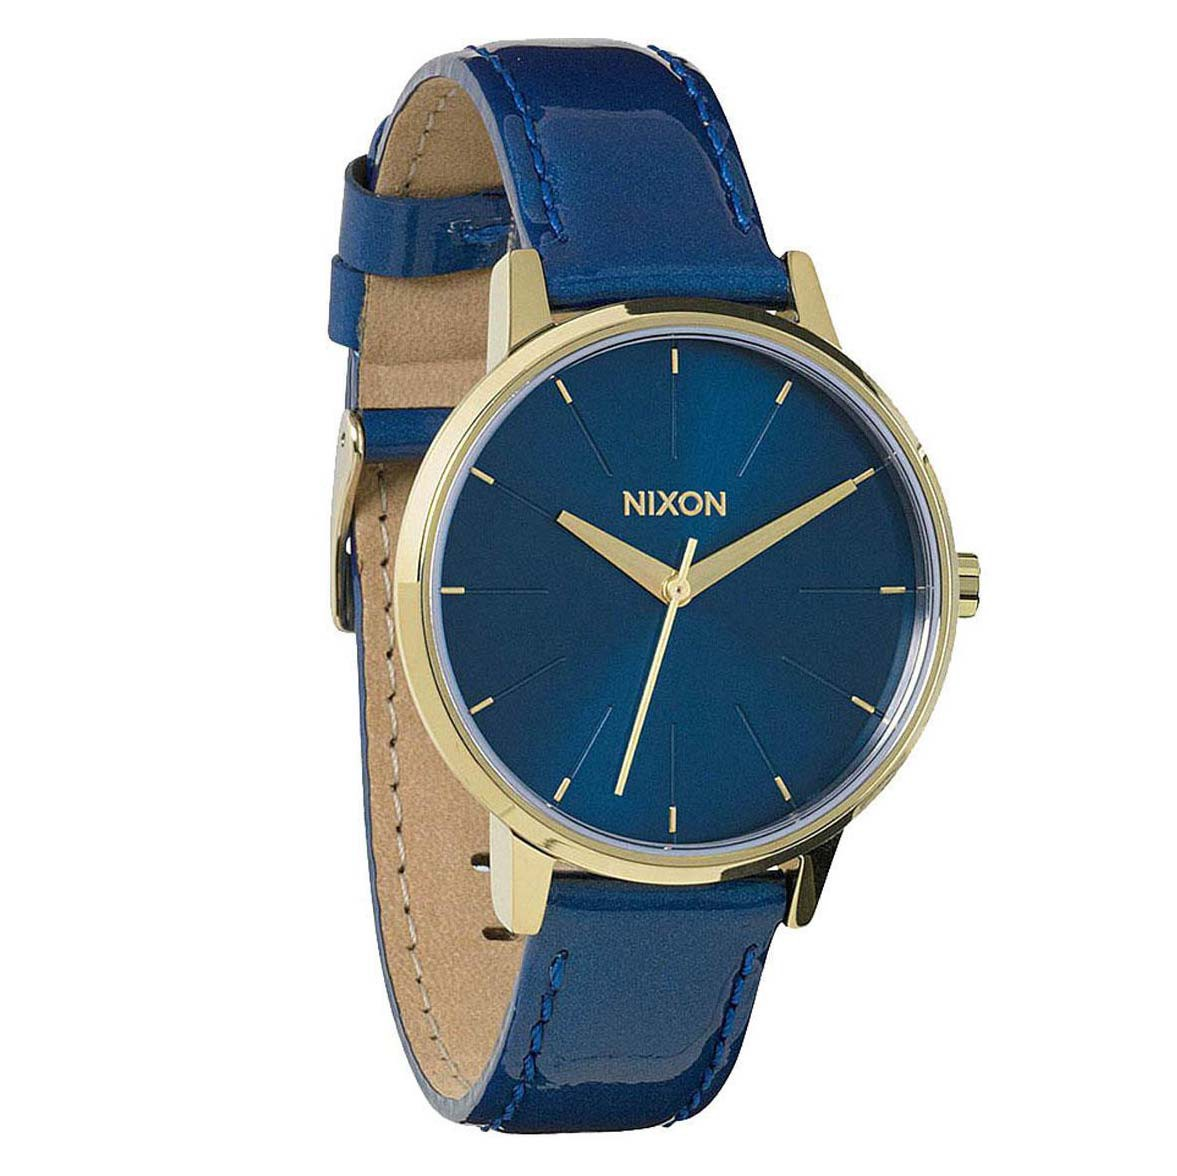 Hodinky Nixon Kensington Leather blue/light gold patent